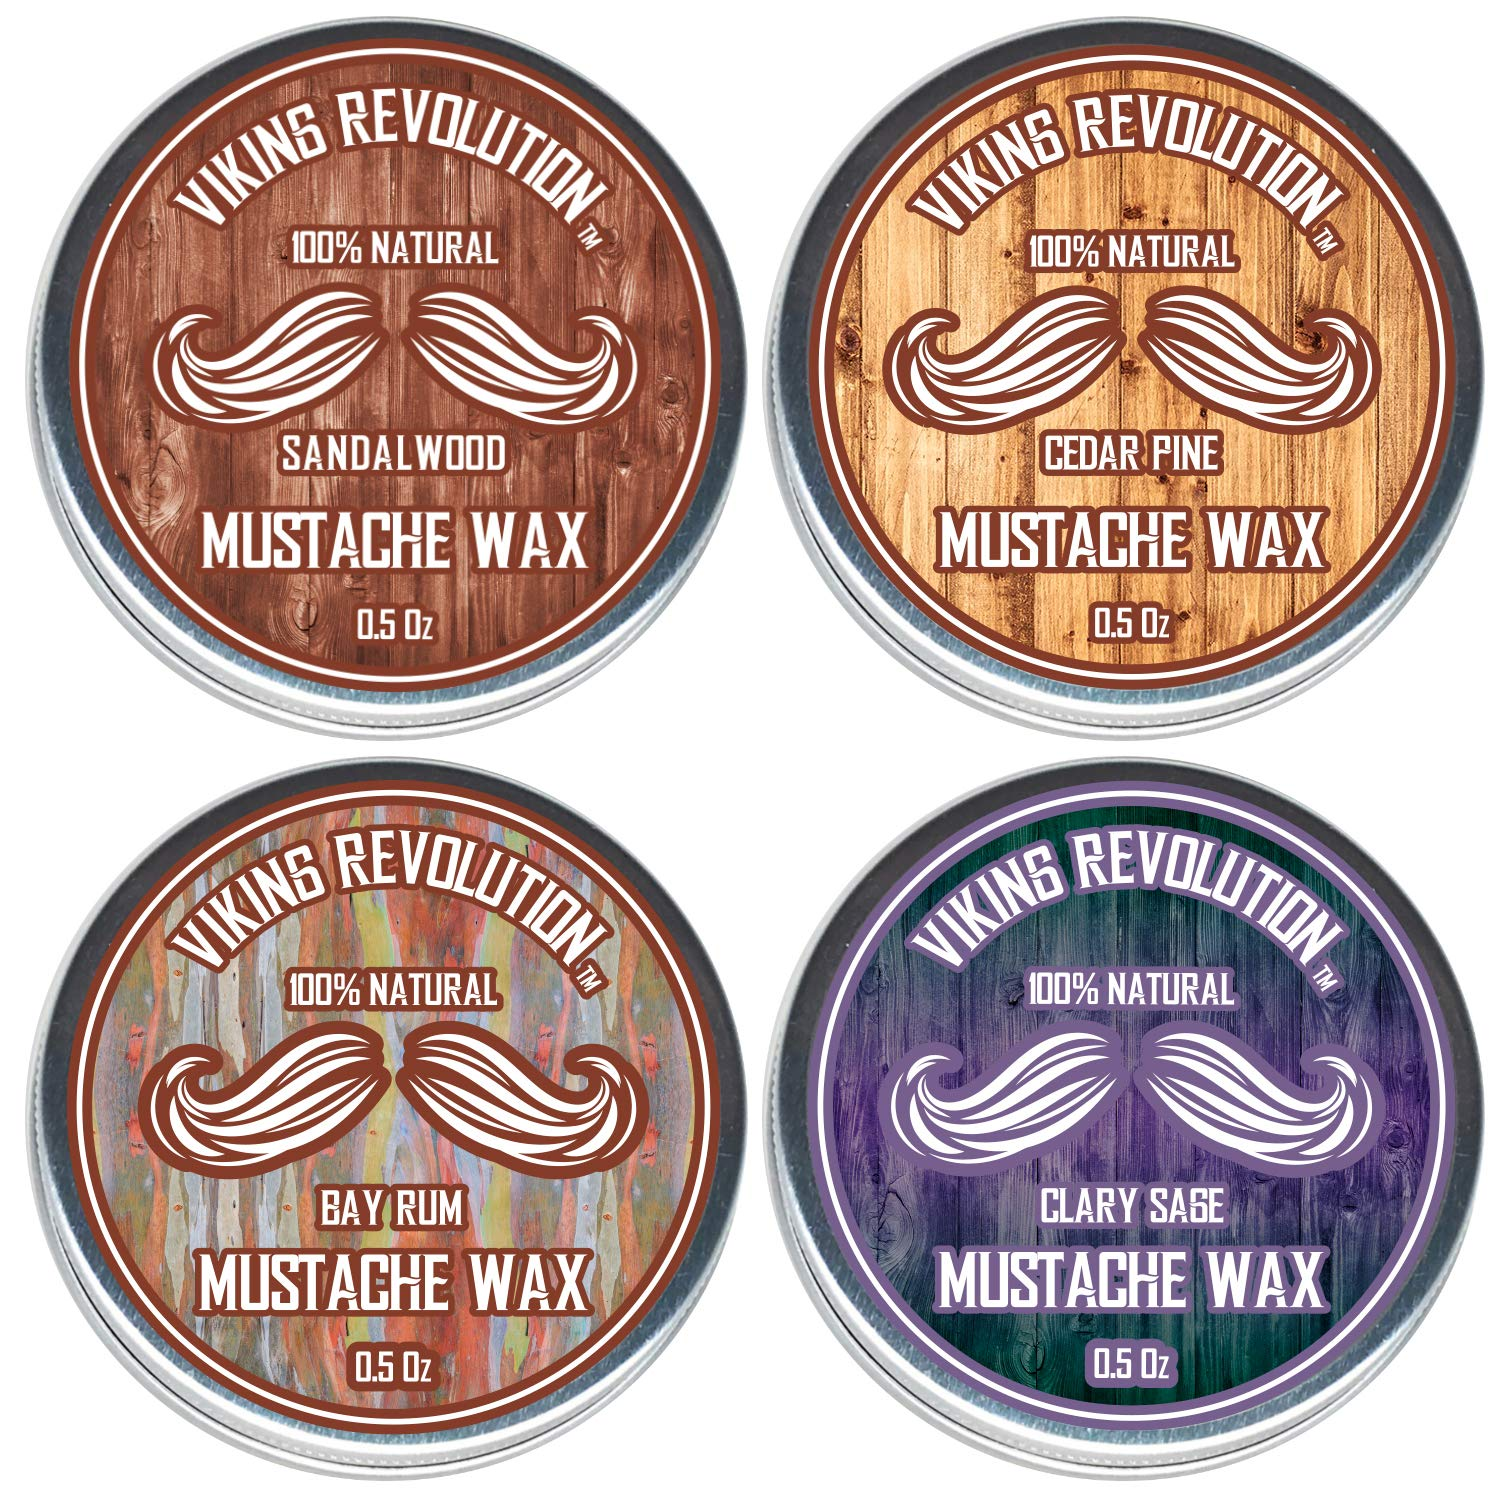 Mustache Wax 4 Variety Pack - Beard & Moustache Wax for Men - Strong Hold Helps Train Tame & Style- Sandalwood, Clary Sage, Cedar Pine, Bay Rum Styles